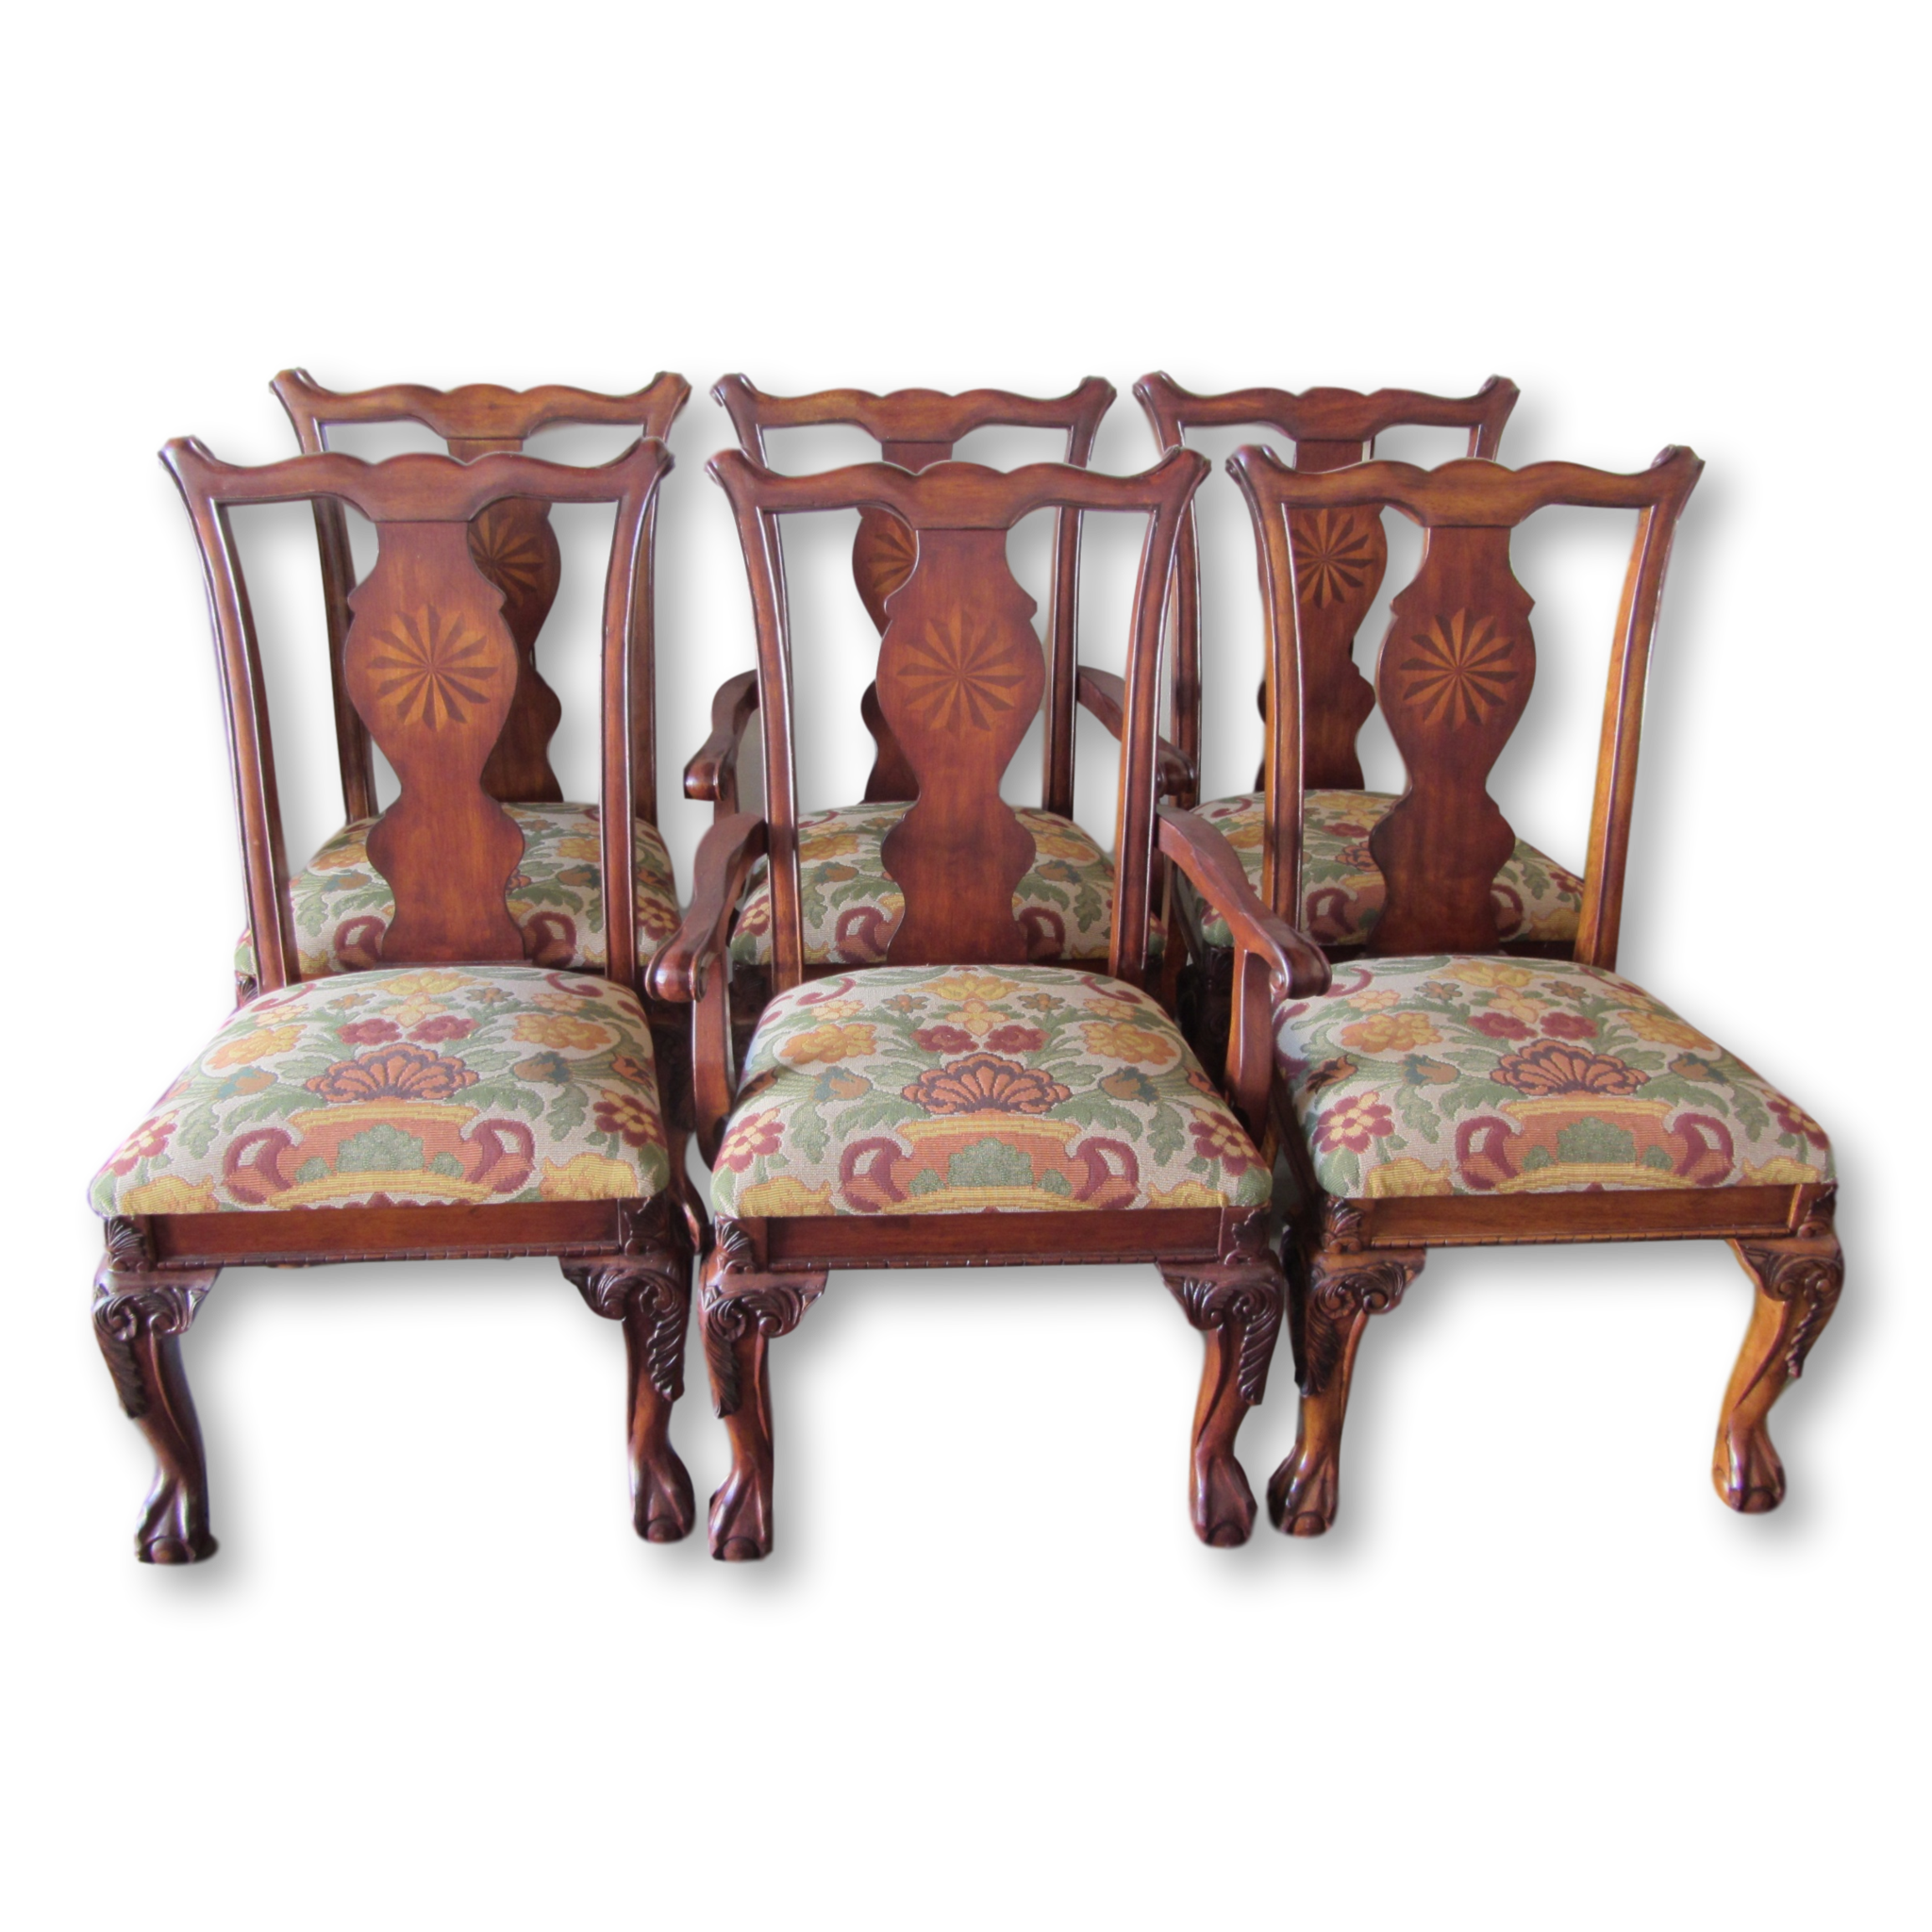 Decorate Your Dinning With These Lovely Christmas Chair: Rustic Queen Anne Dining Chairs With Marquetry Splat-Set